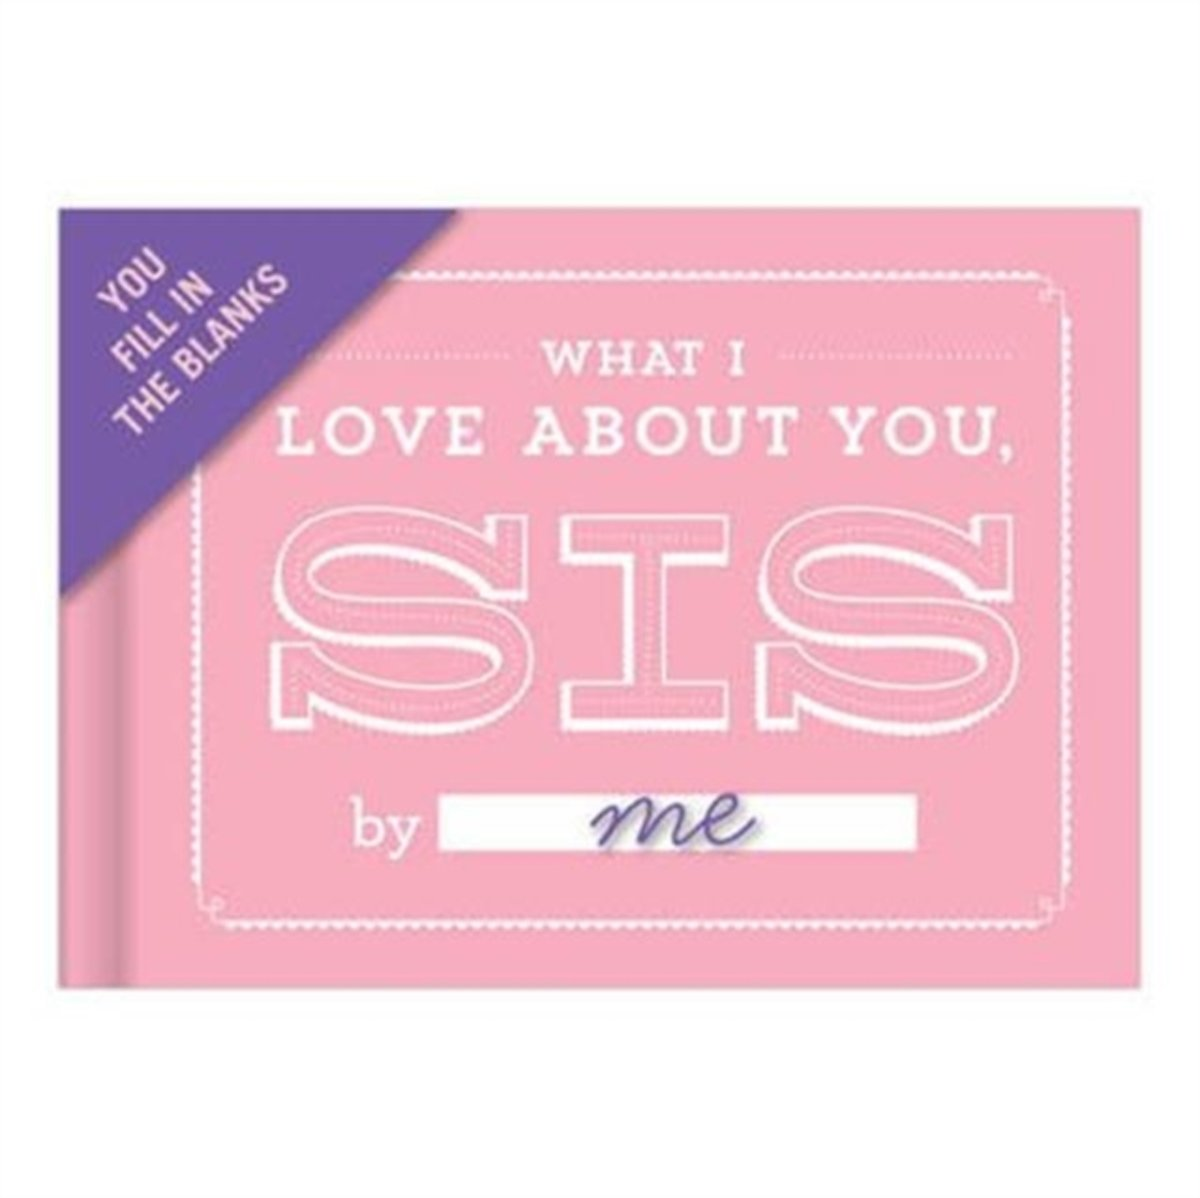 What I Love About You, Sis Fill-in-the-Blank Journal